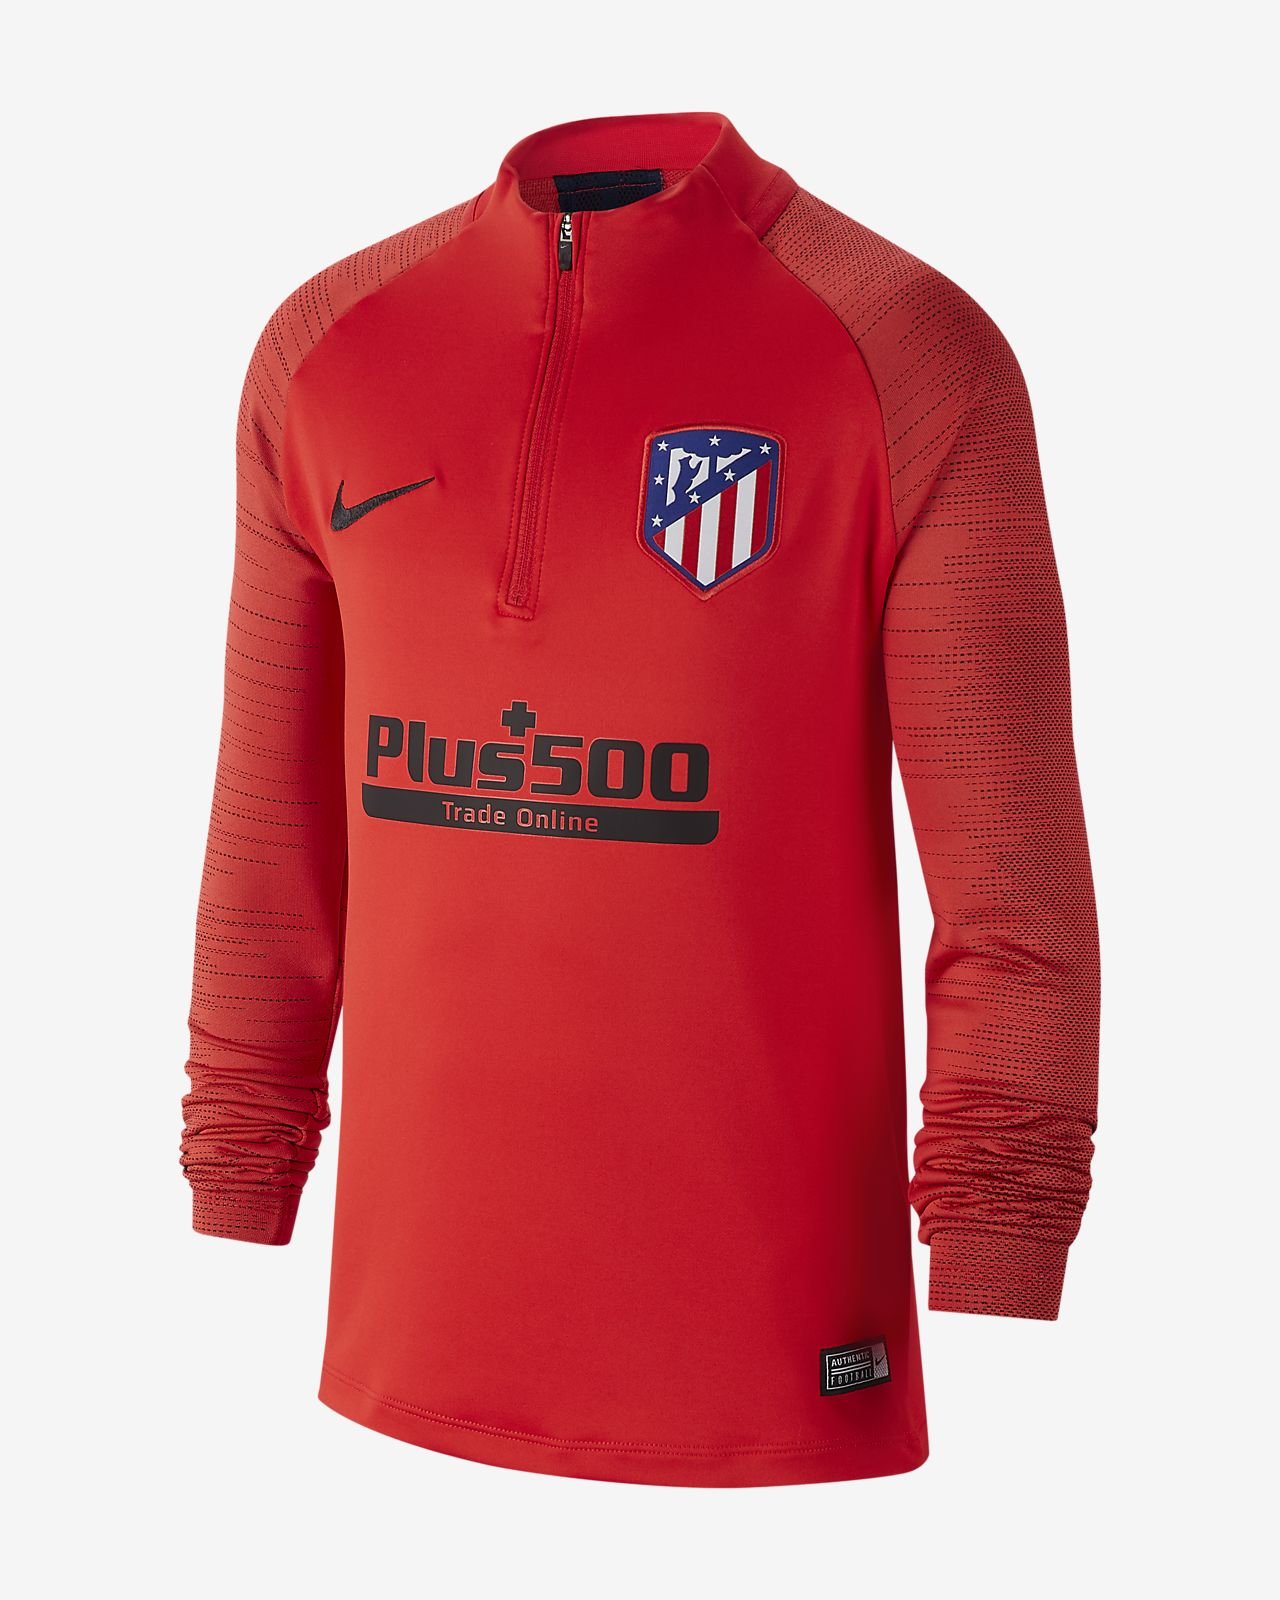 Nike Dri-FIT Atlético de Madrid Strike Older Kids' Football Drill Top